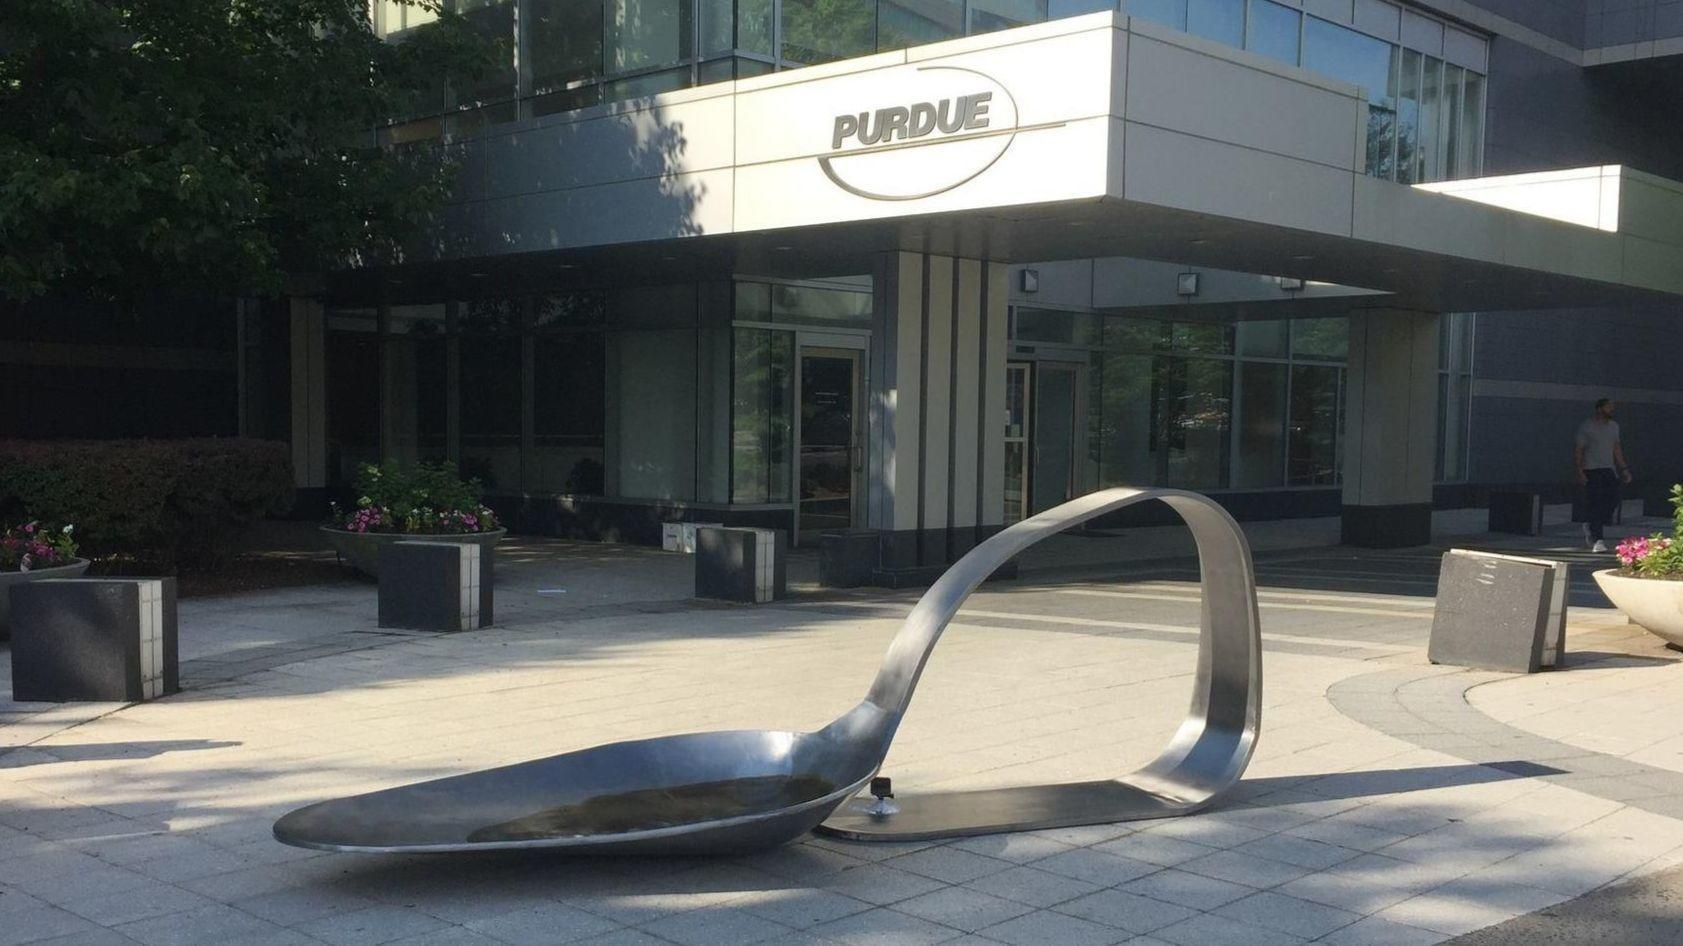 Gallery Owner Arrested After Dropping Sculpture Of Giant Drug Spoon At Purdue Pharma